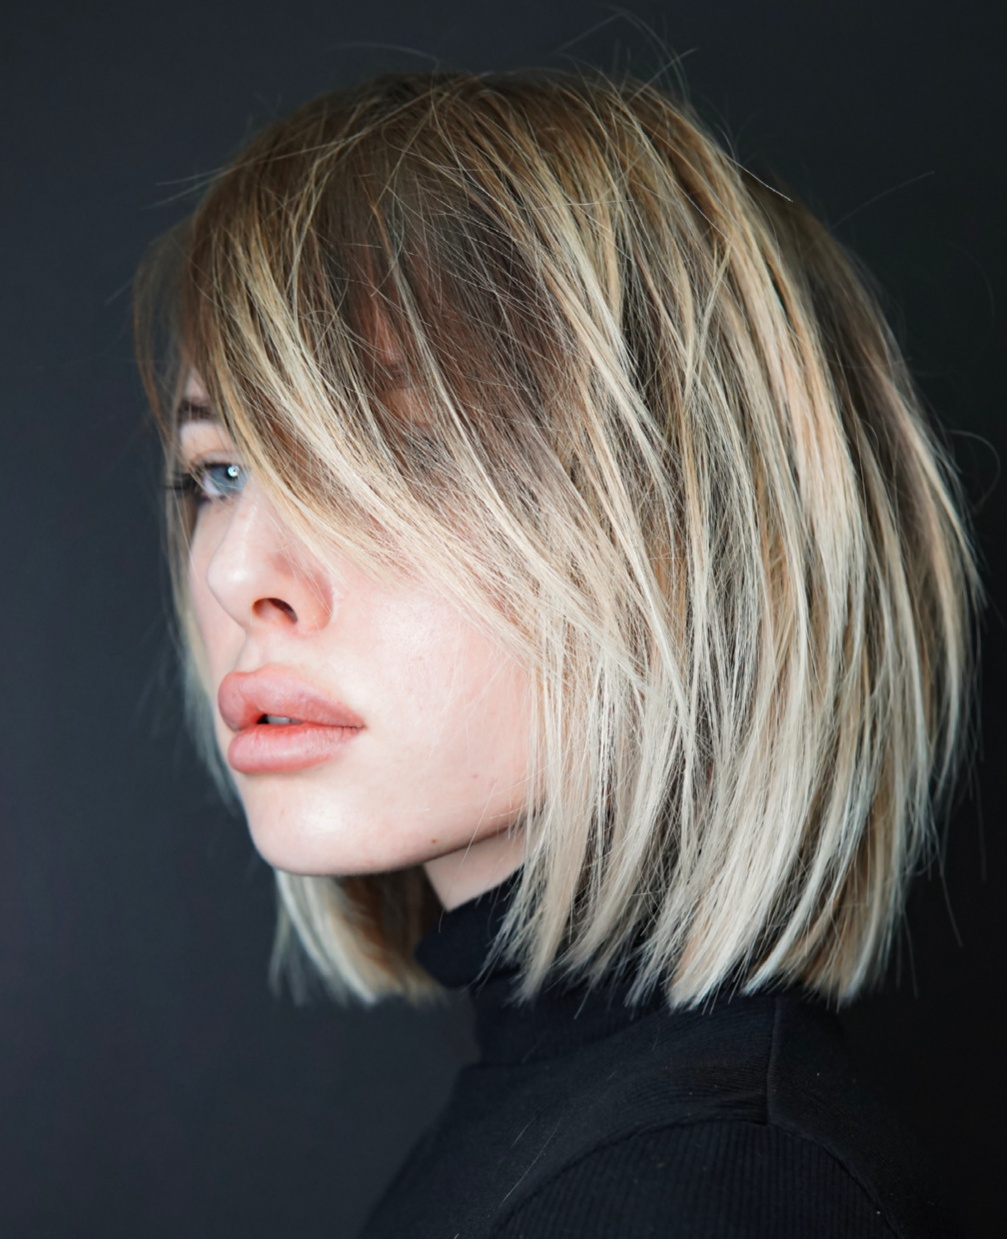 40 Newest Haircut Ideas And Haircut Trends For 2020 Hair Adviser